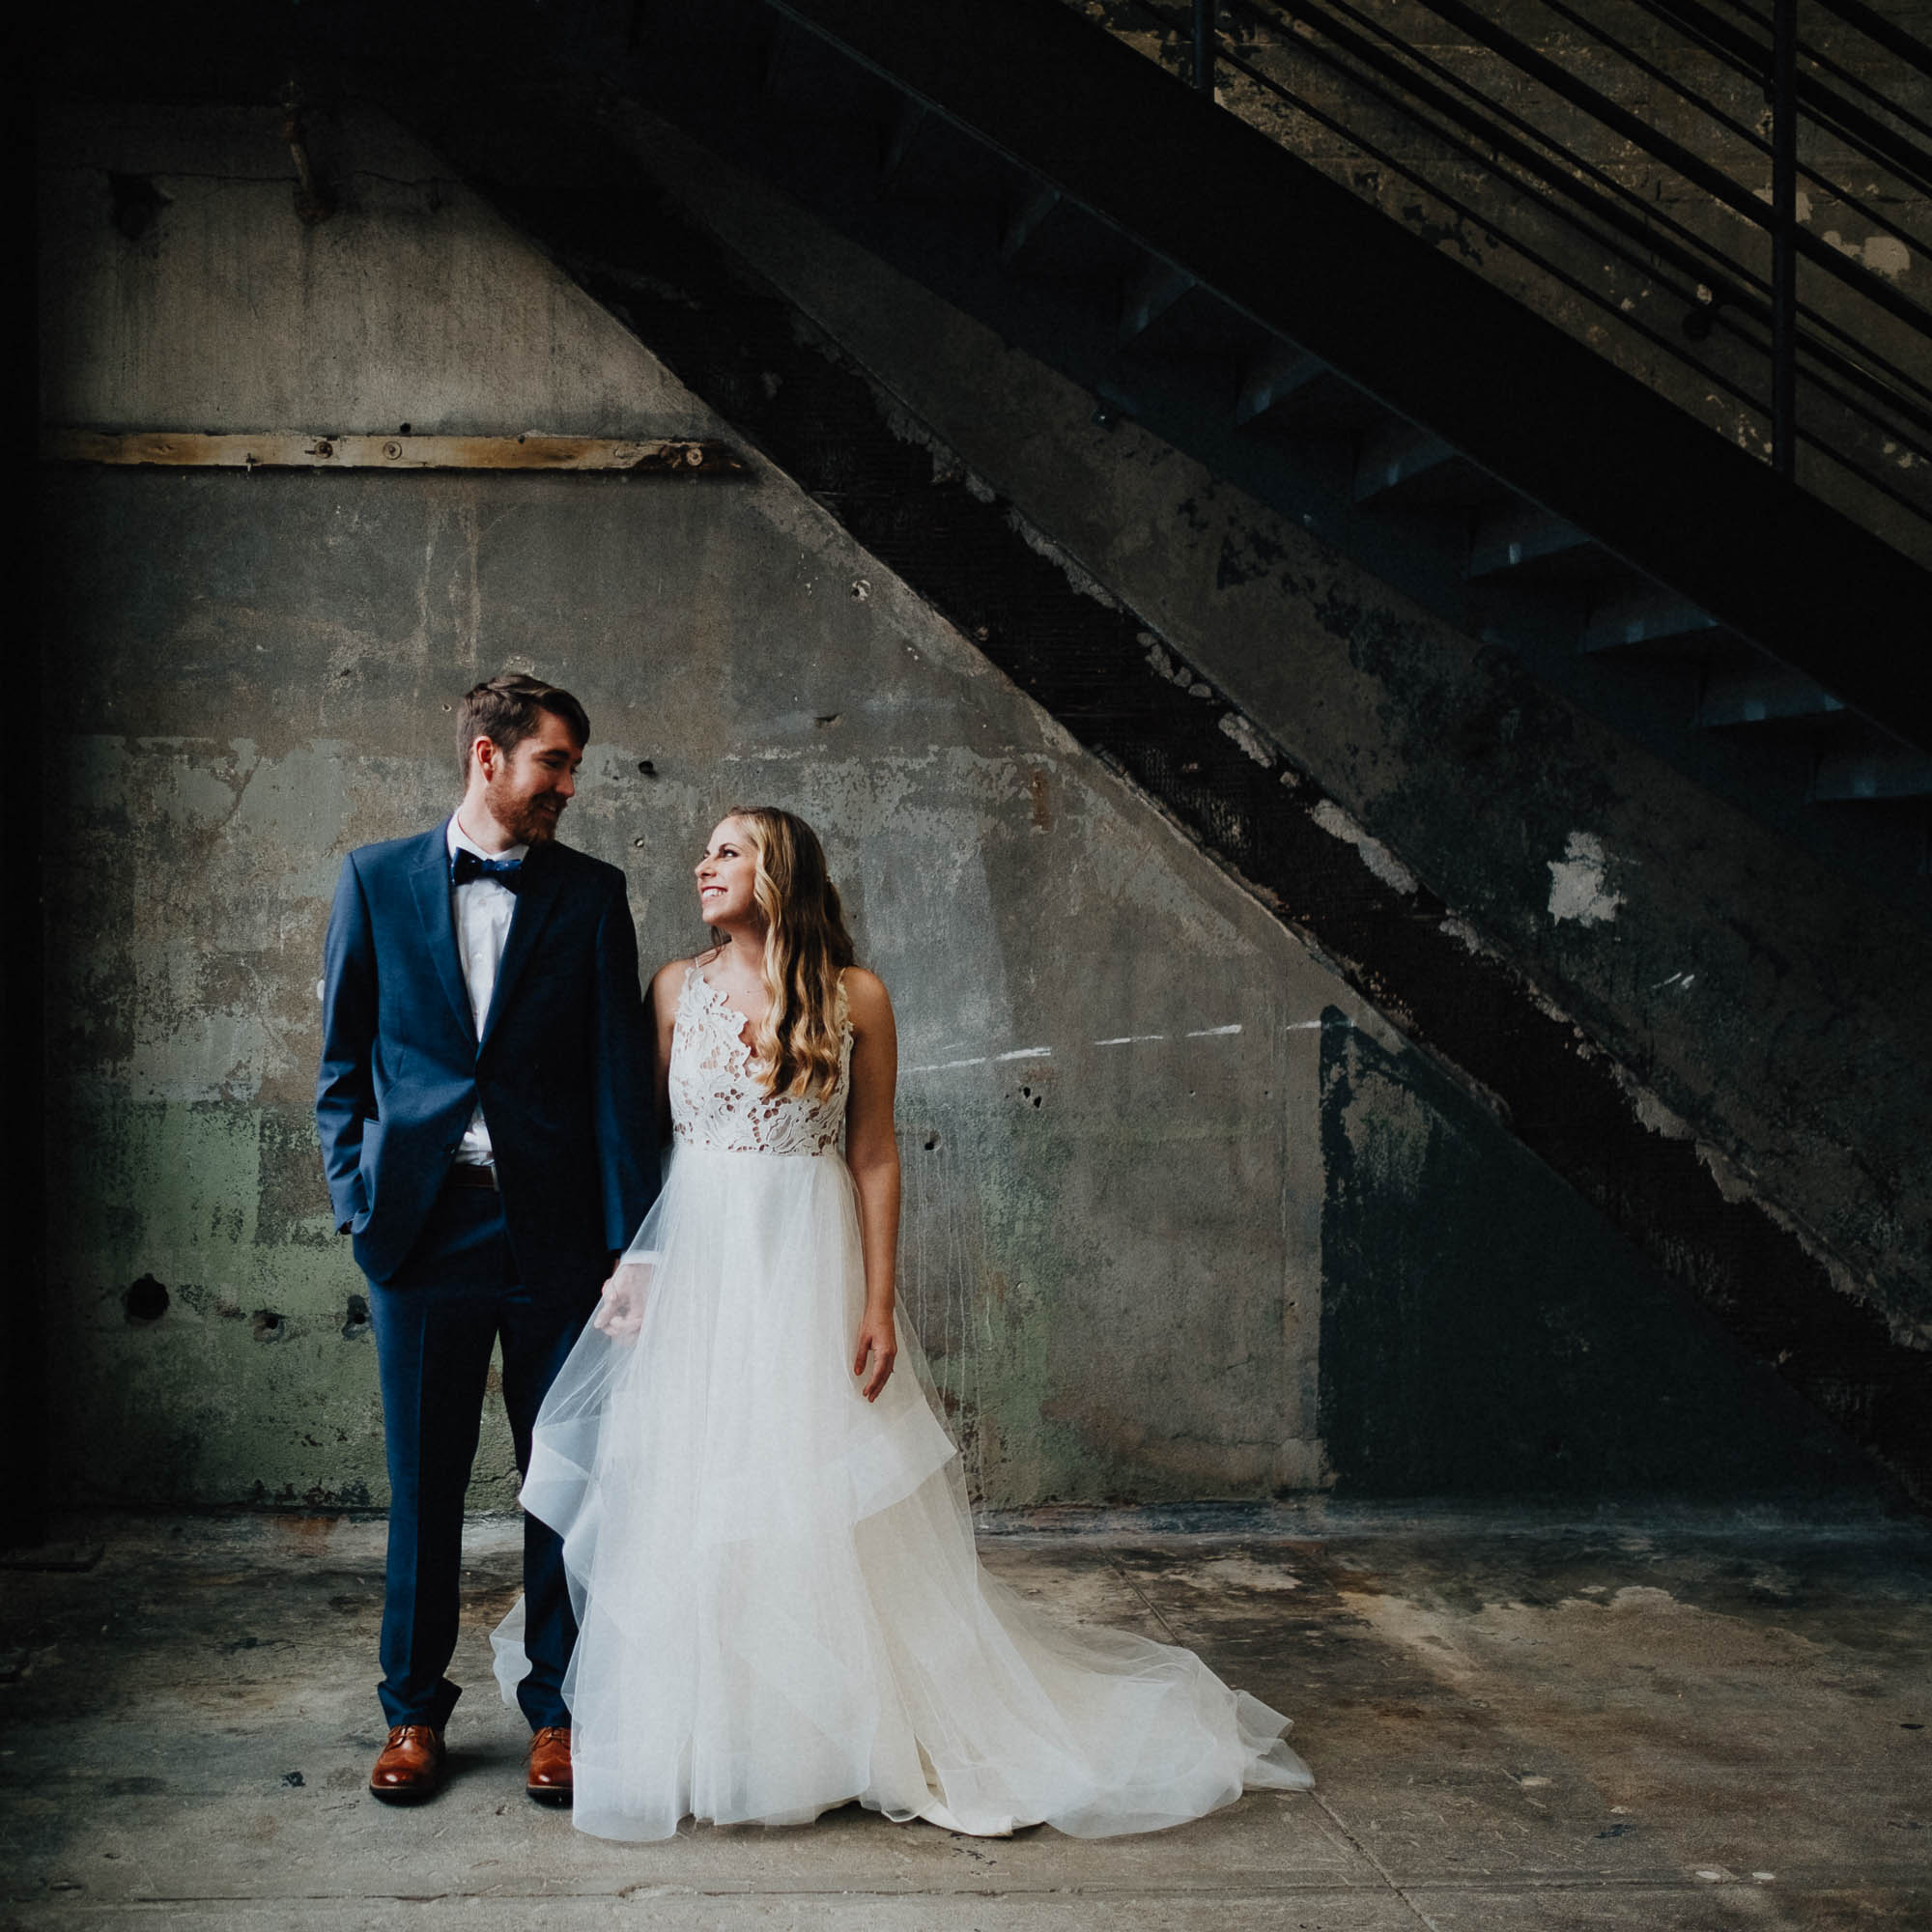 Sara + Tyler got married at the Rhinegiest Brewery in the Over the Rhine neighborhood of Cincinnati Ohio